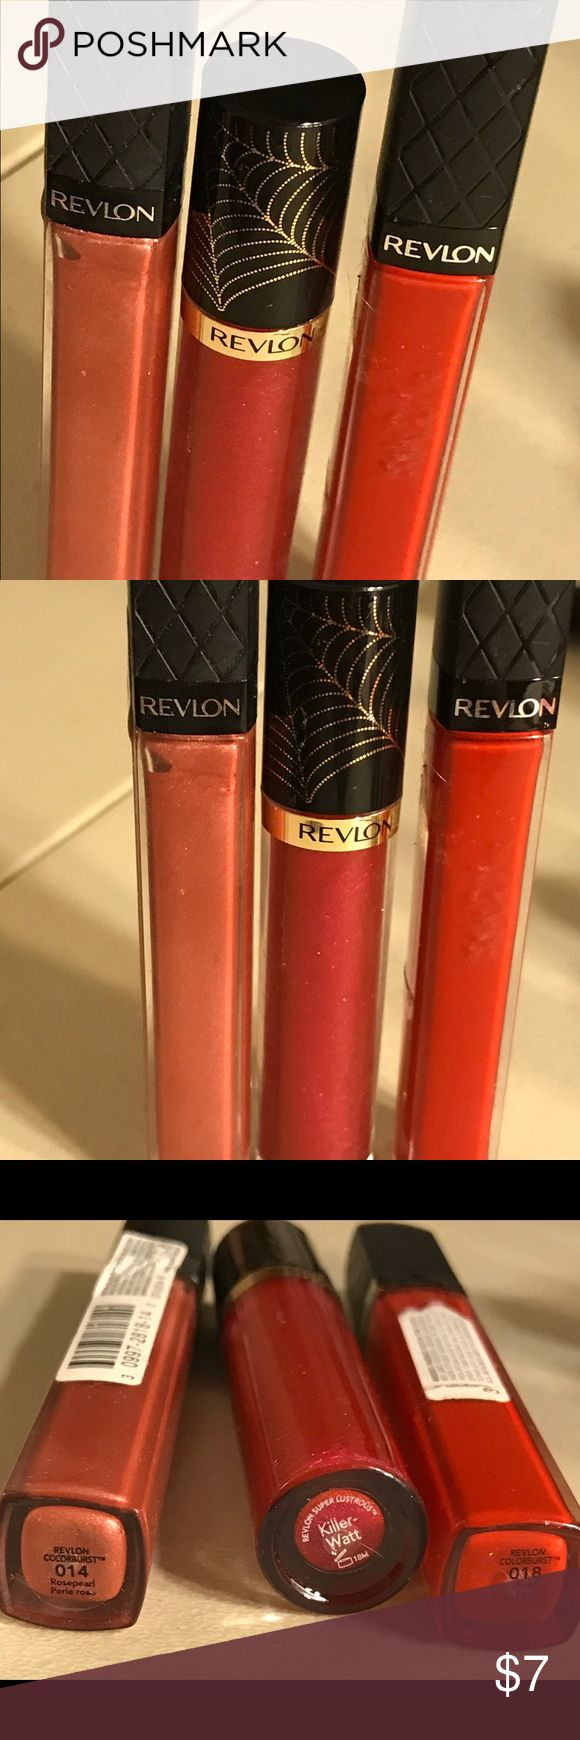 Revlon trio lipgloss Revlon trio lipgloss!! Testers!! Revlon colorburst lipgloss in color 014 rosepearl, revlon colorburst in color 018 fire, and revlon super lustrous in color killer-watt. Thanks for checking out Luxury1cosmetics!! Offers are welcomed, bundles are discounted. Revlon Makeup Lip Balm & Gloss